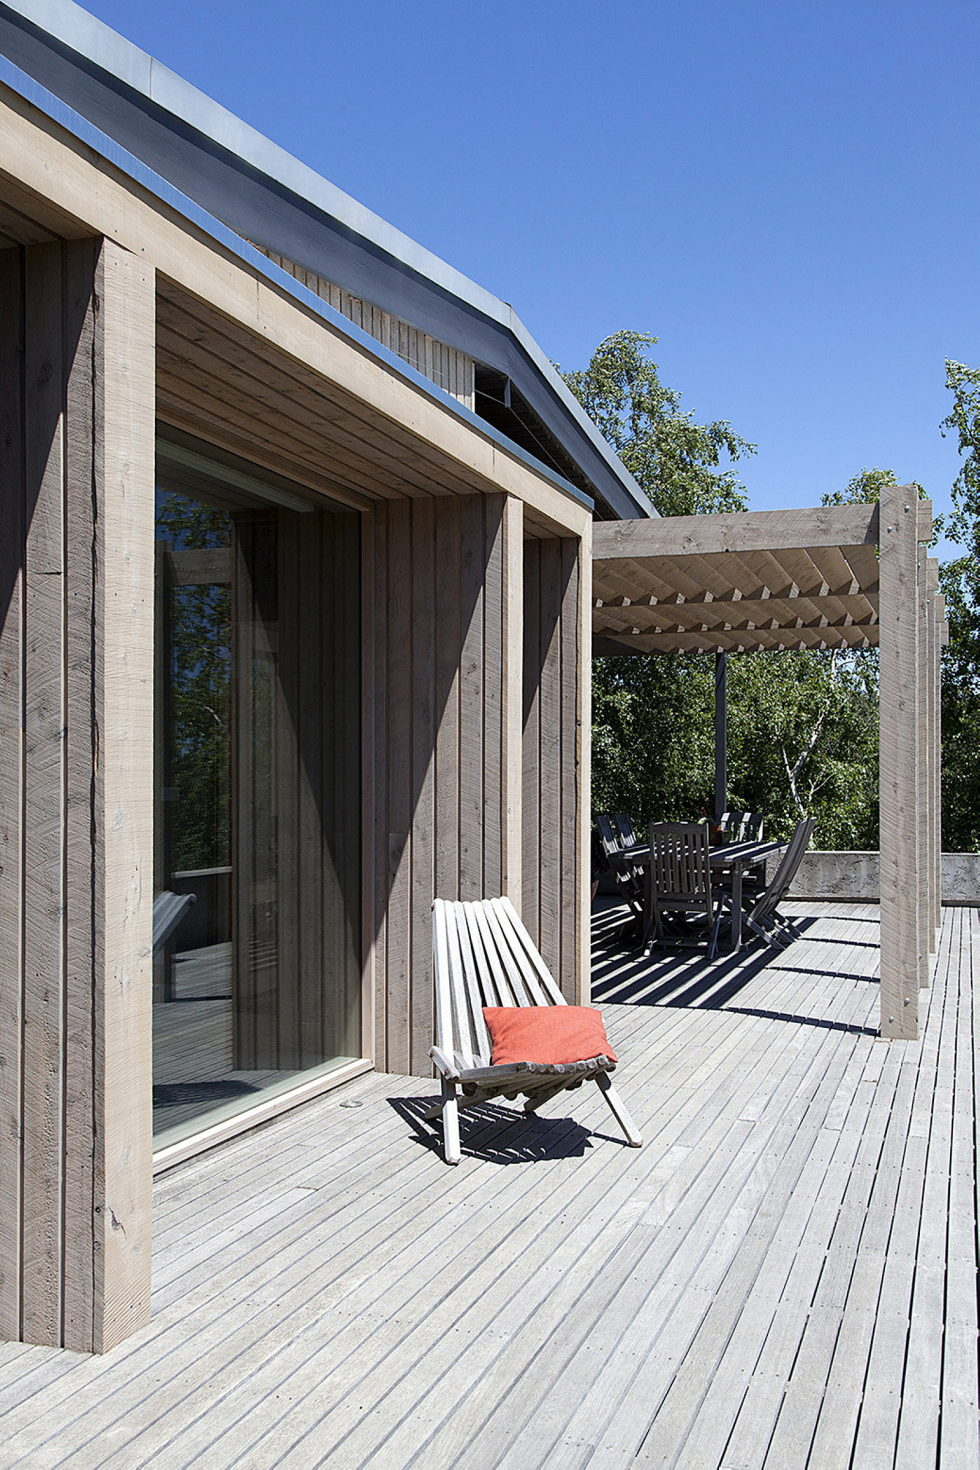 Plinth House in Australia from the Luke Stanley Architects 6